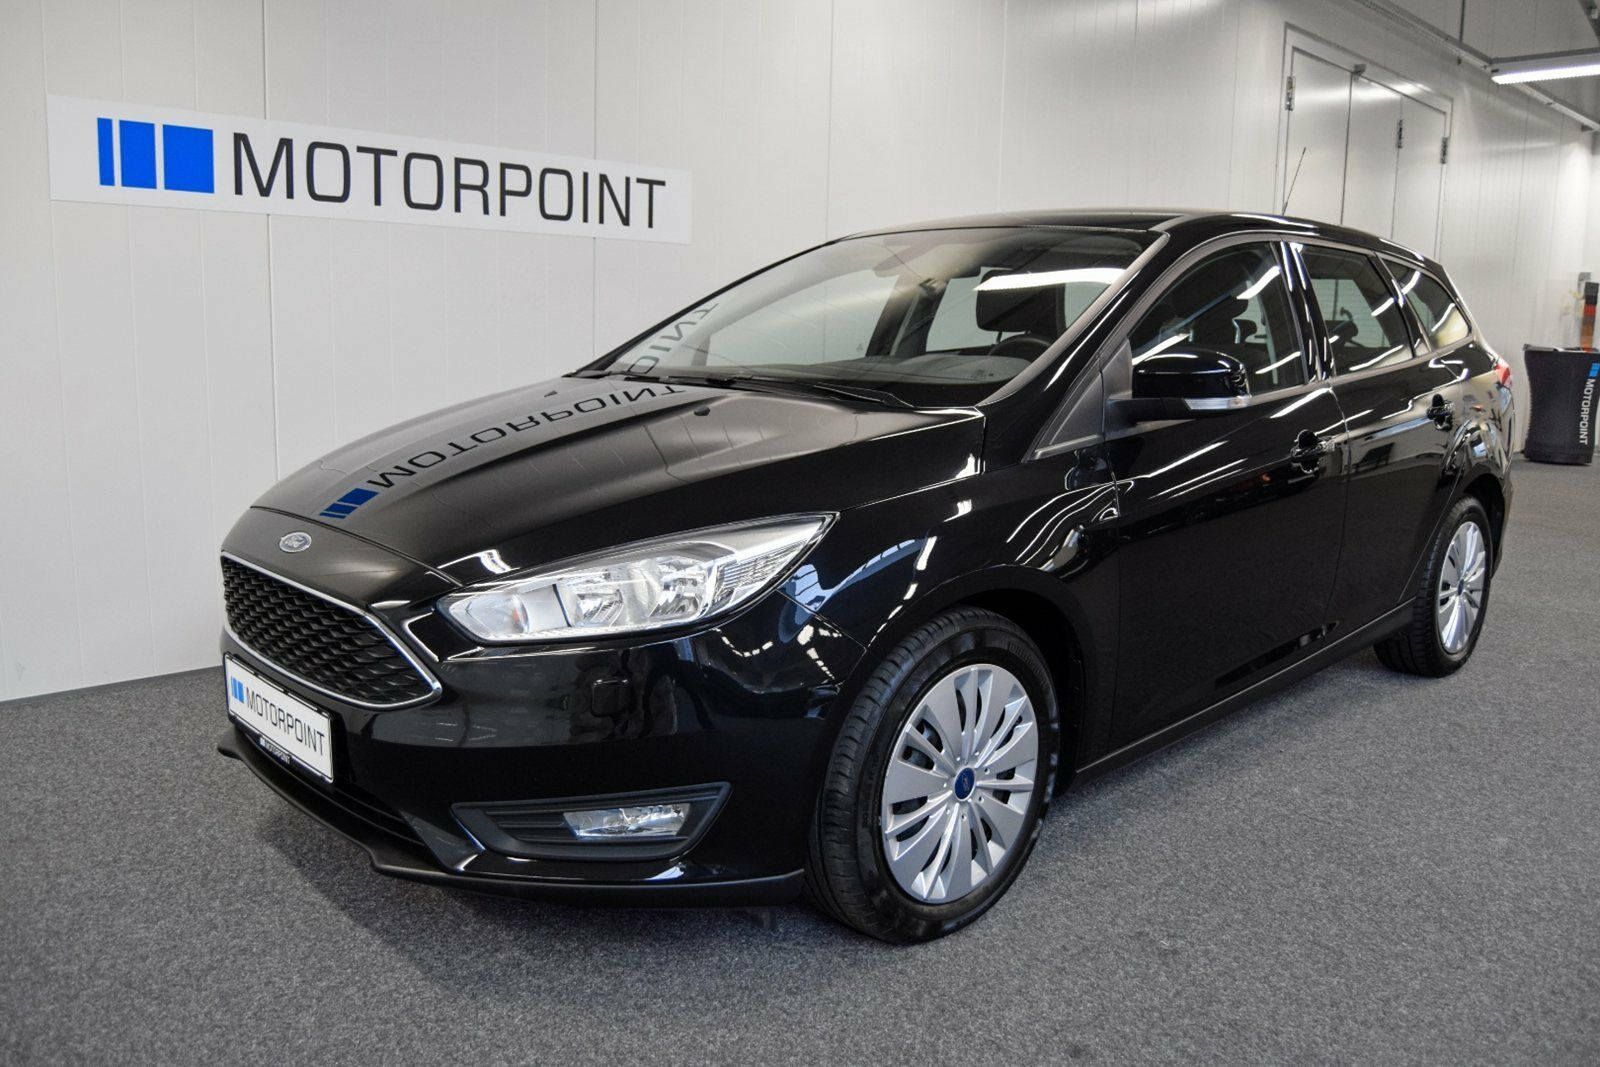 Ford Focus 1,0 SCTi 125 Business stc. 5d - 153.900 kr.